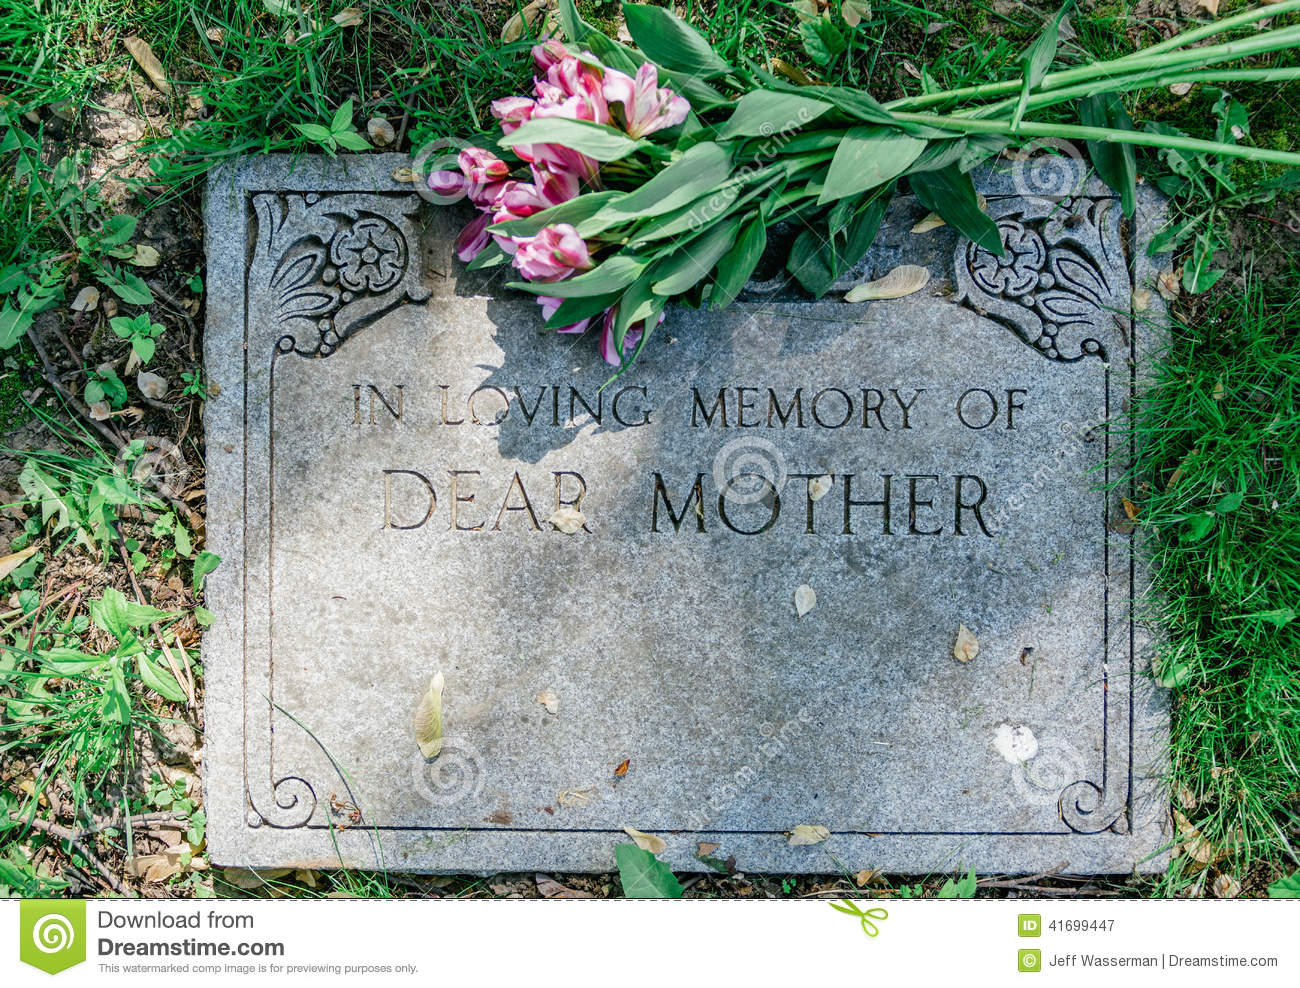 Flowers on mothers grave marker stock image image of funeral flowers on mothers grave marker izmirmasajfo